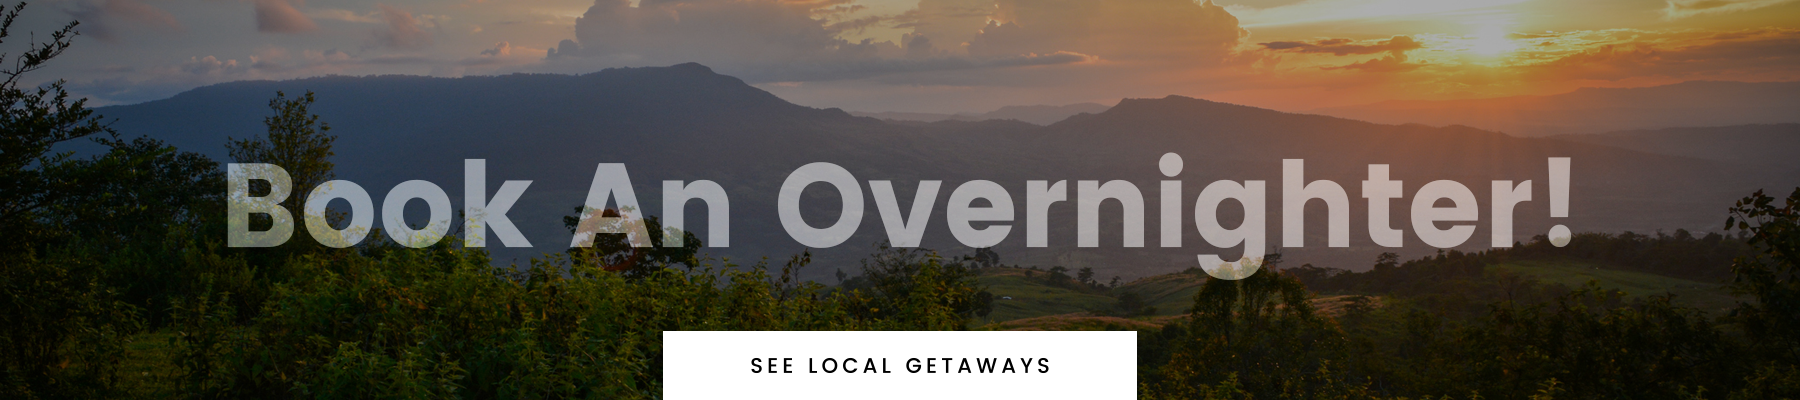 Local Getaways!